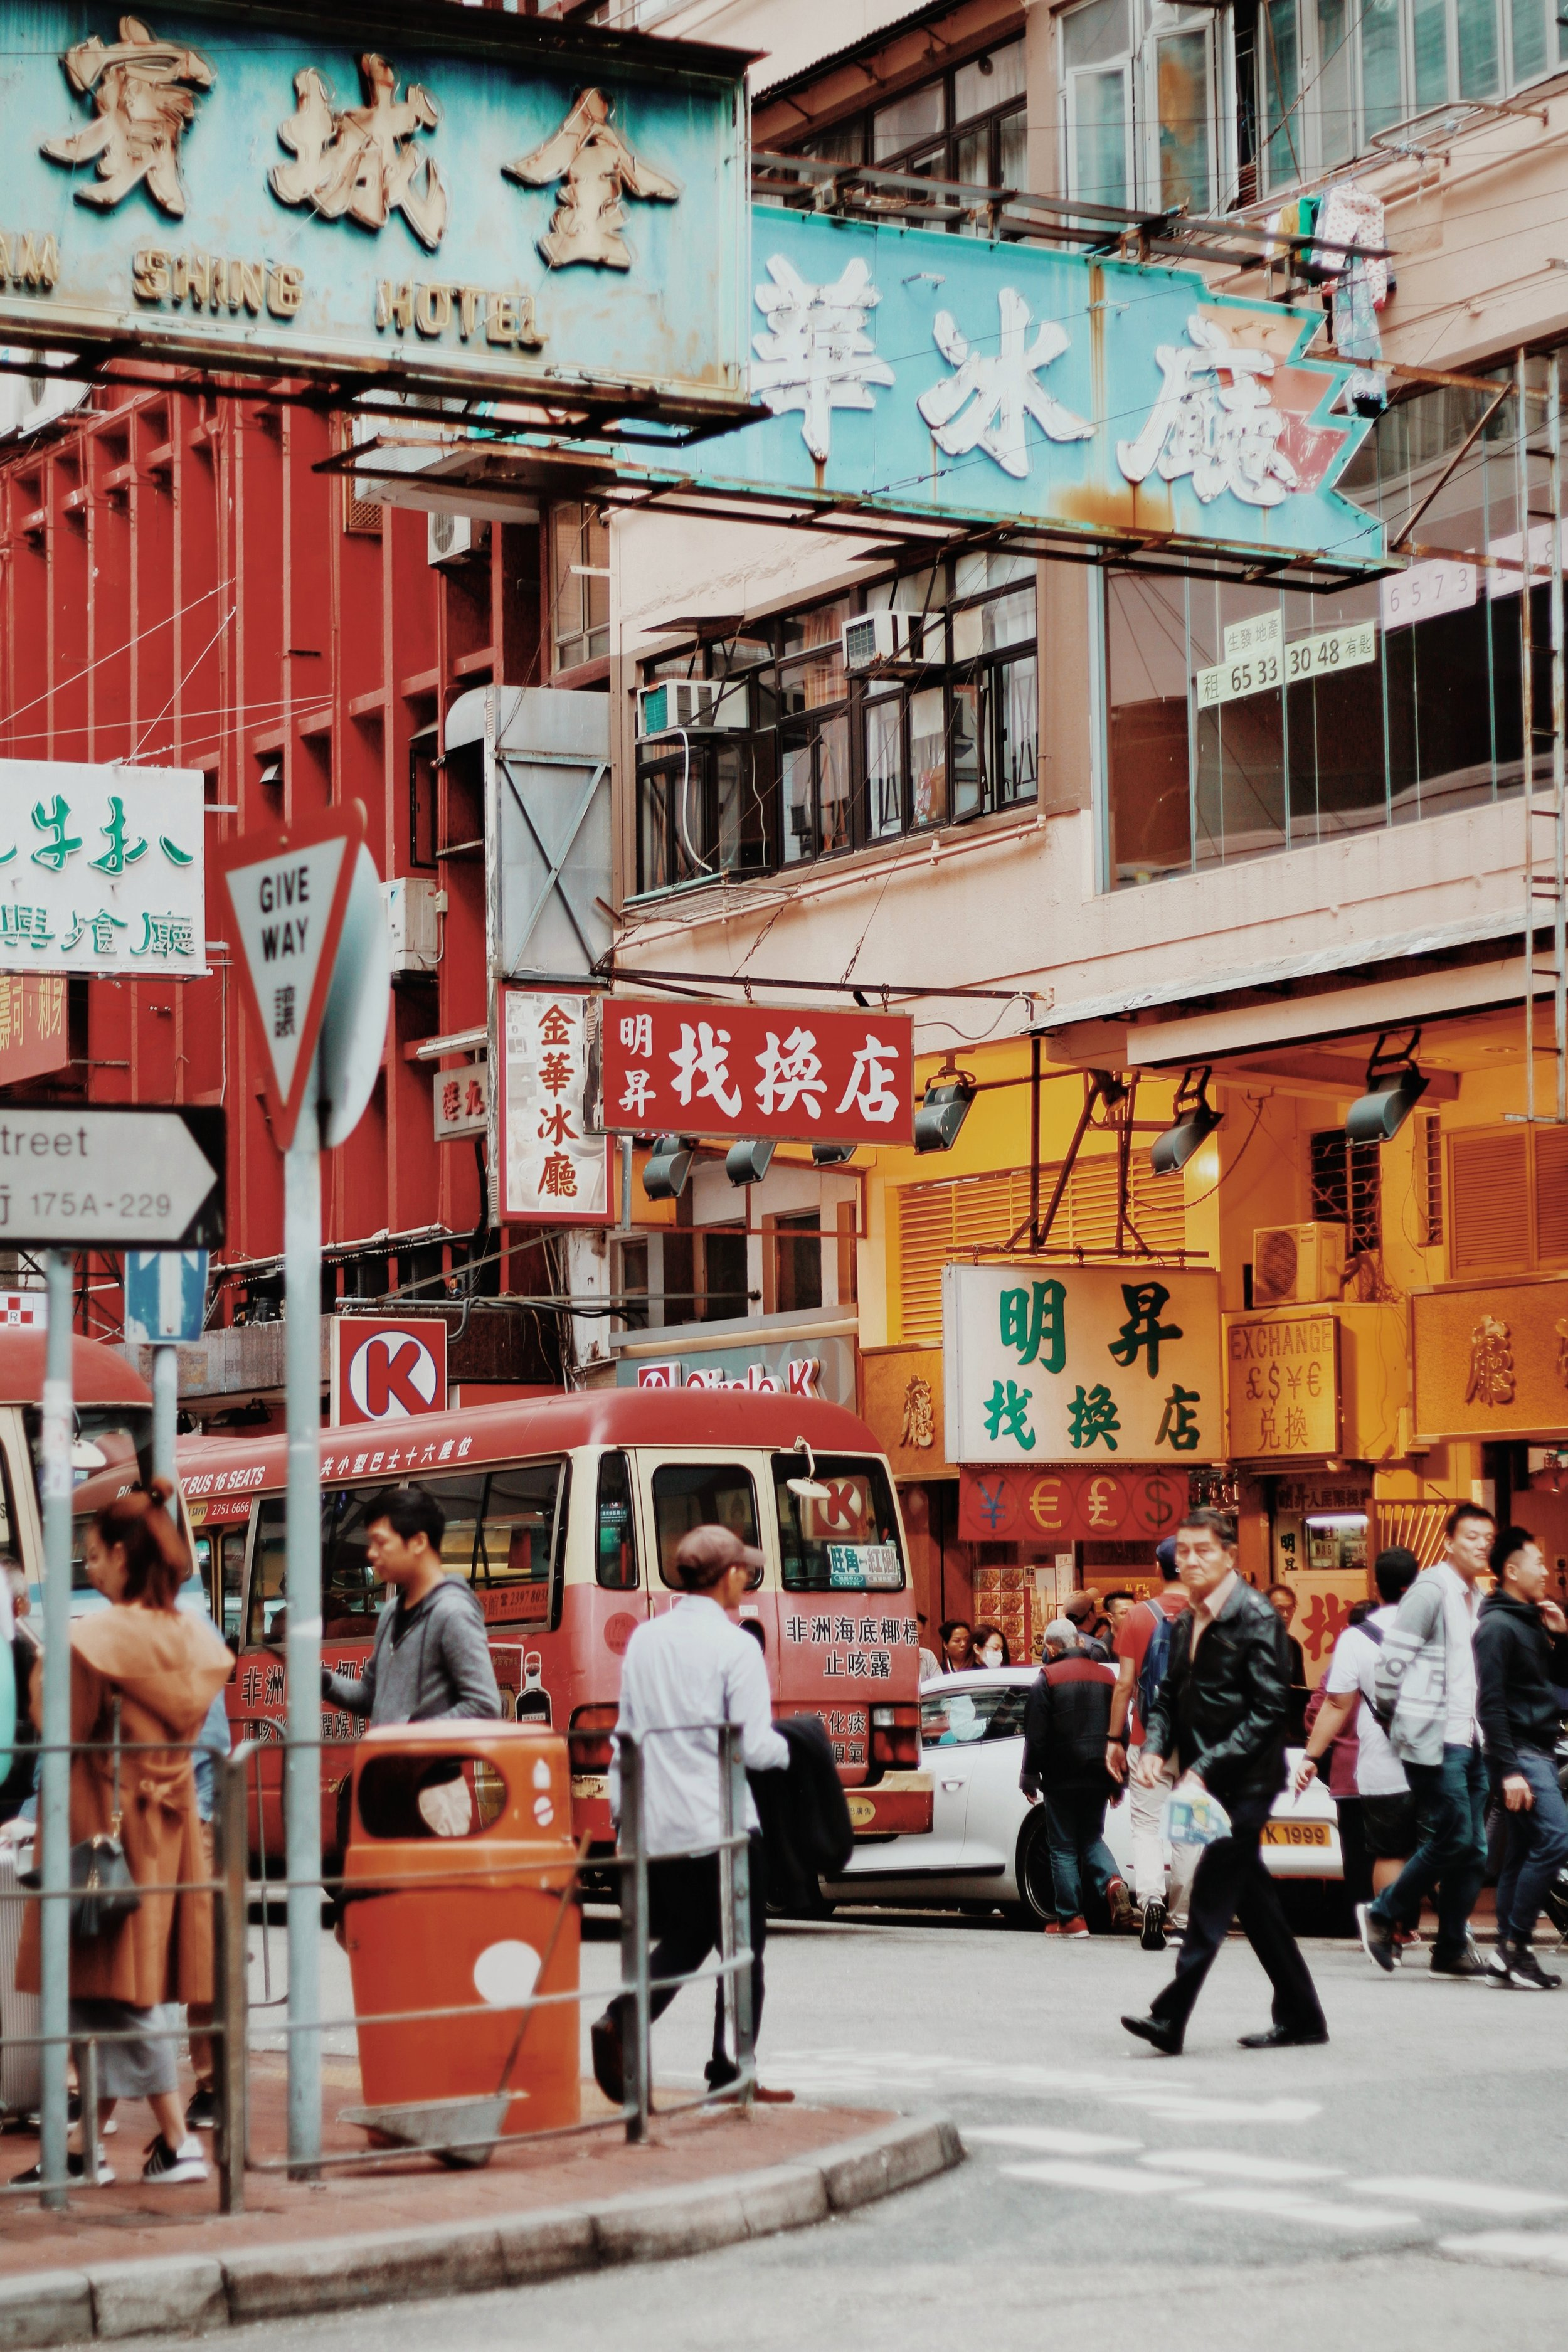 street scene with decadent signs in hong kong